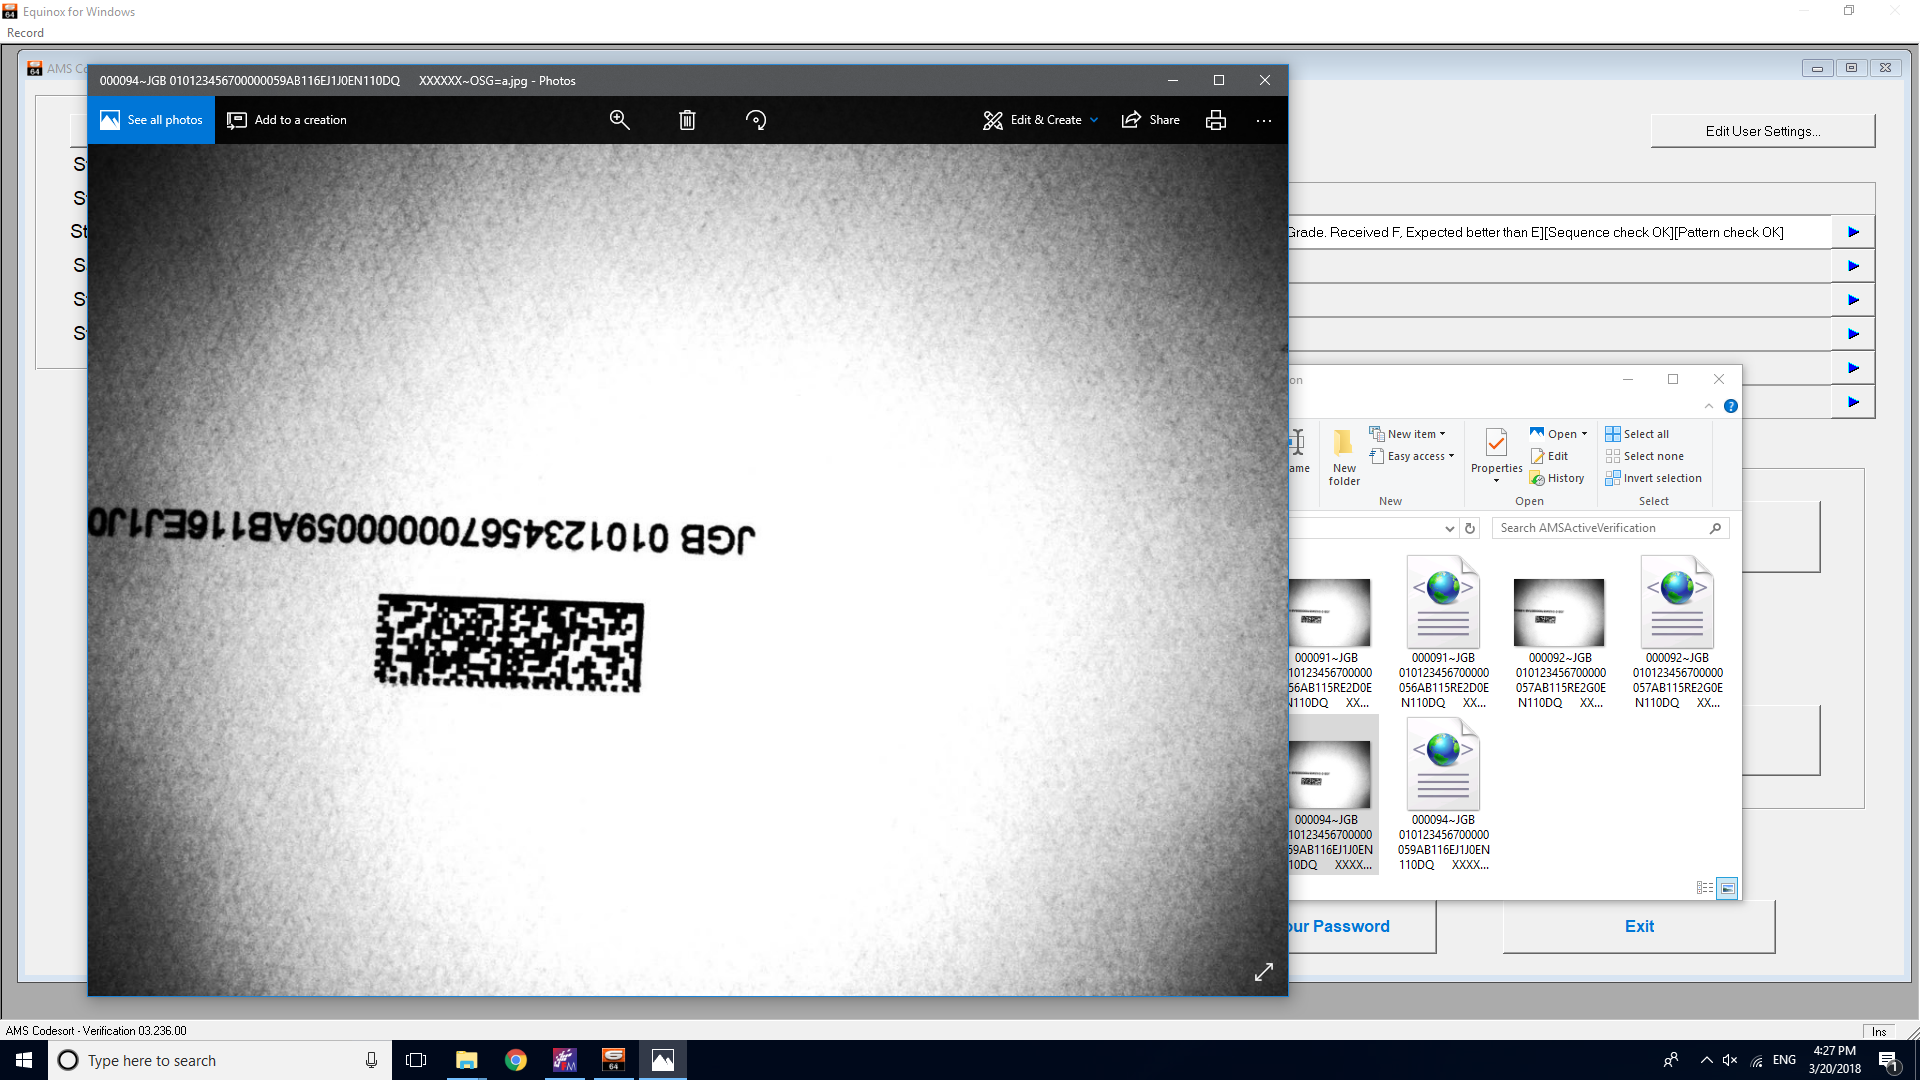 Barcode Verification ams camera verification system - ams mailing systems